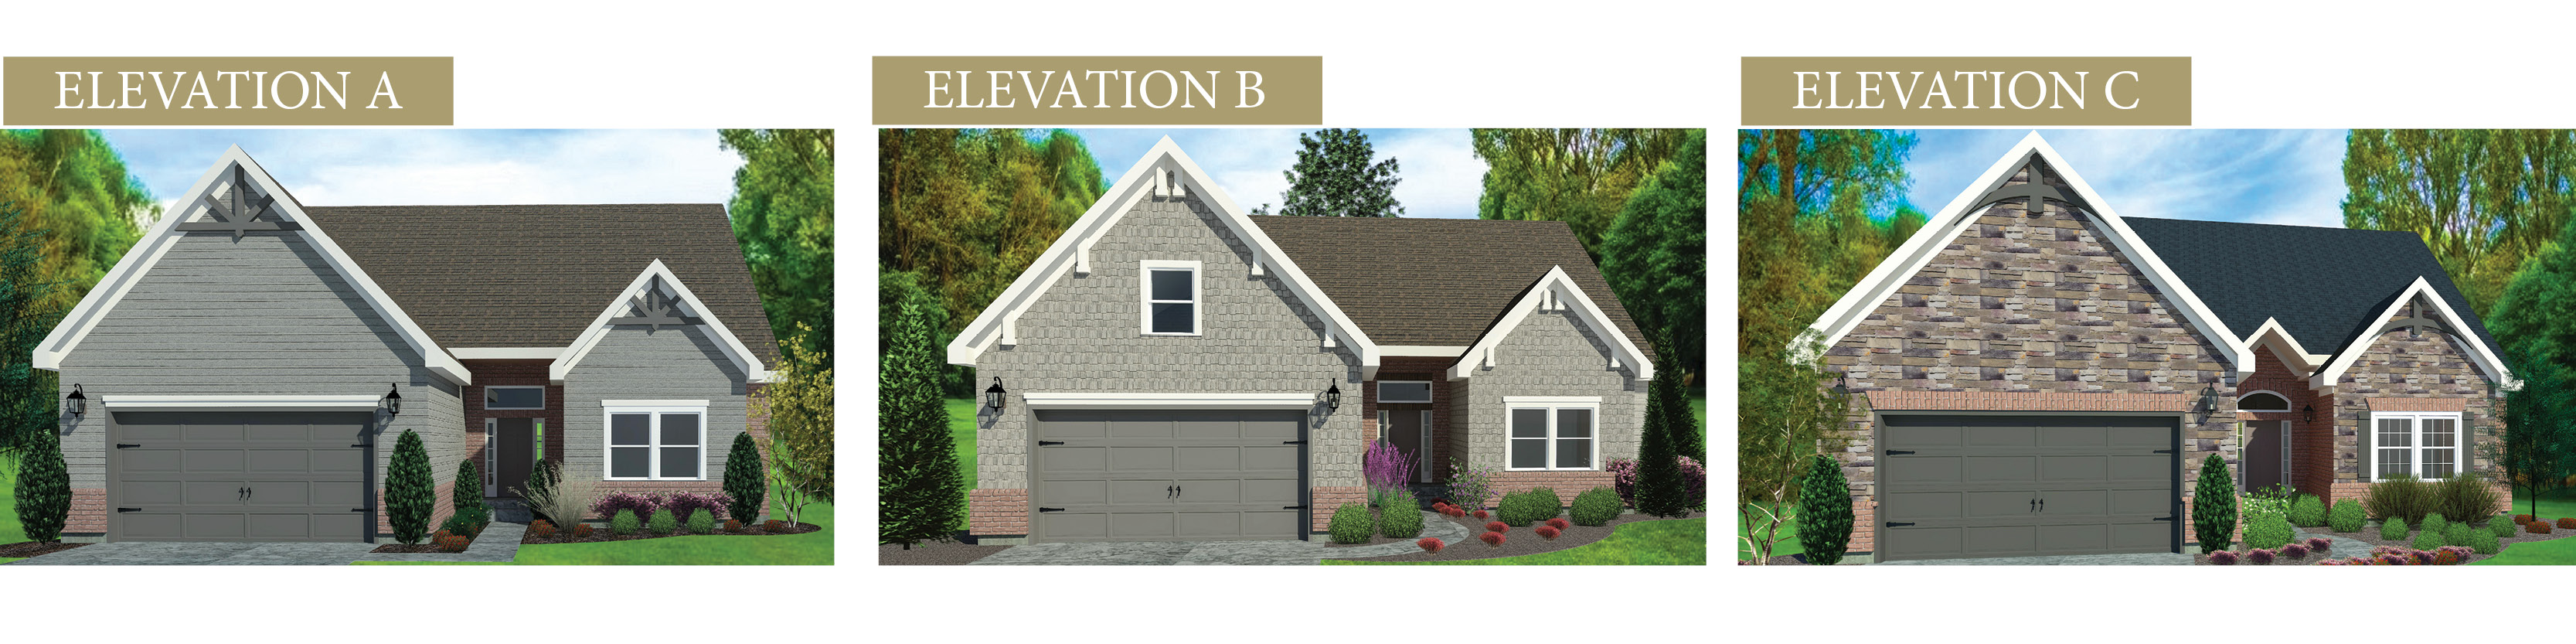 Custom rendering of The Brighton by Design Homes & Development.